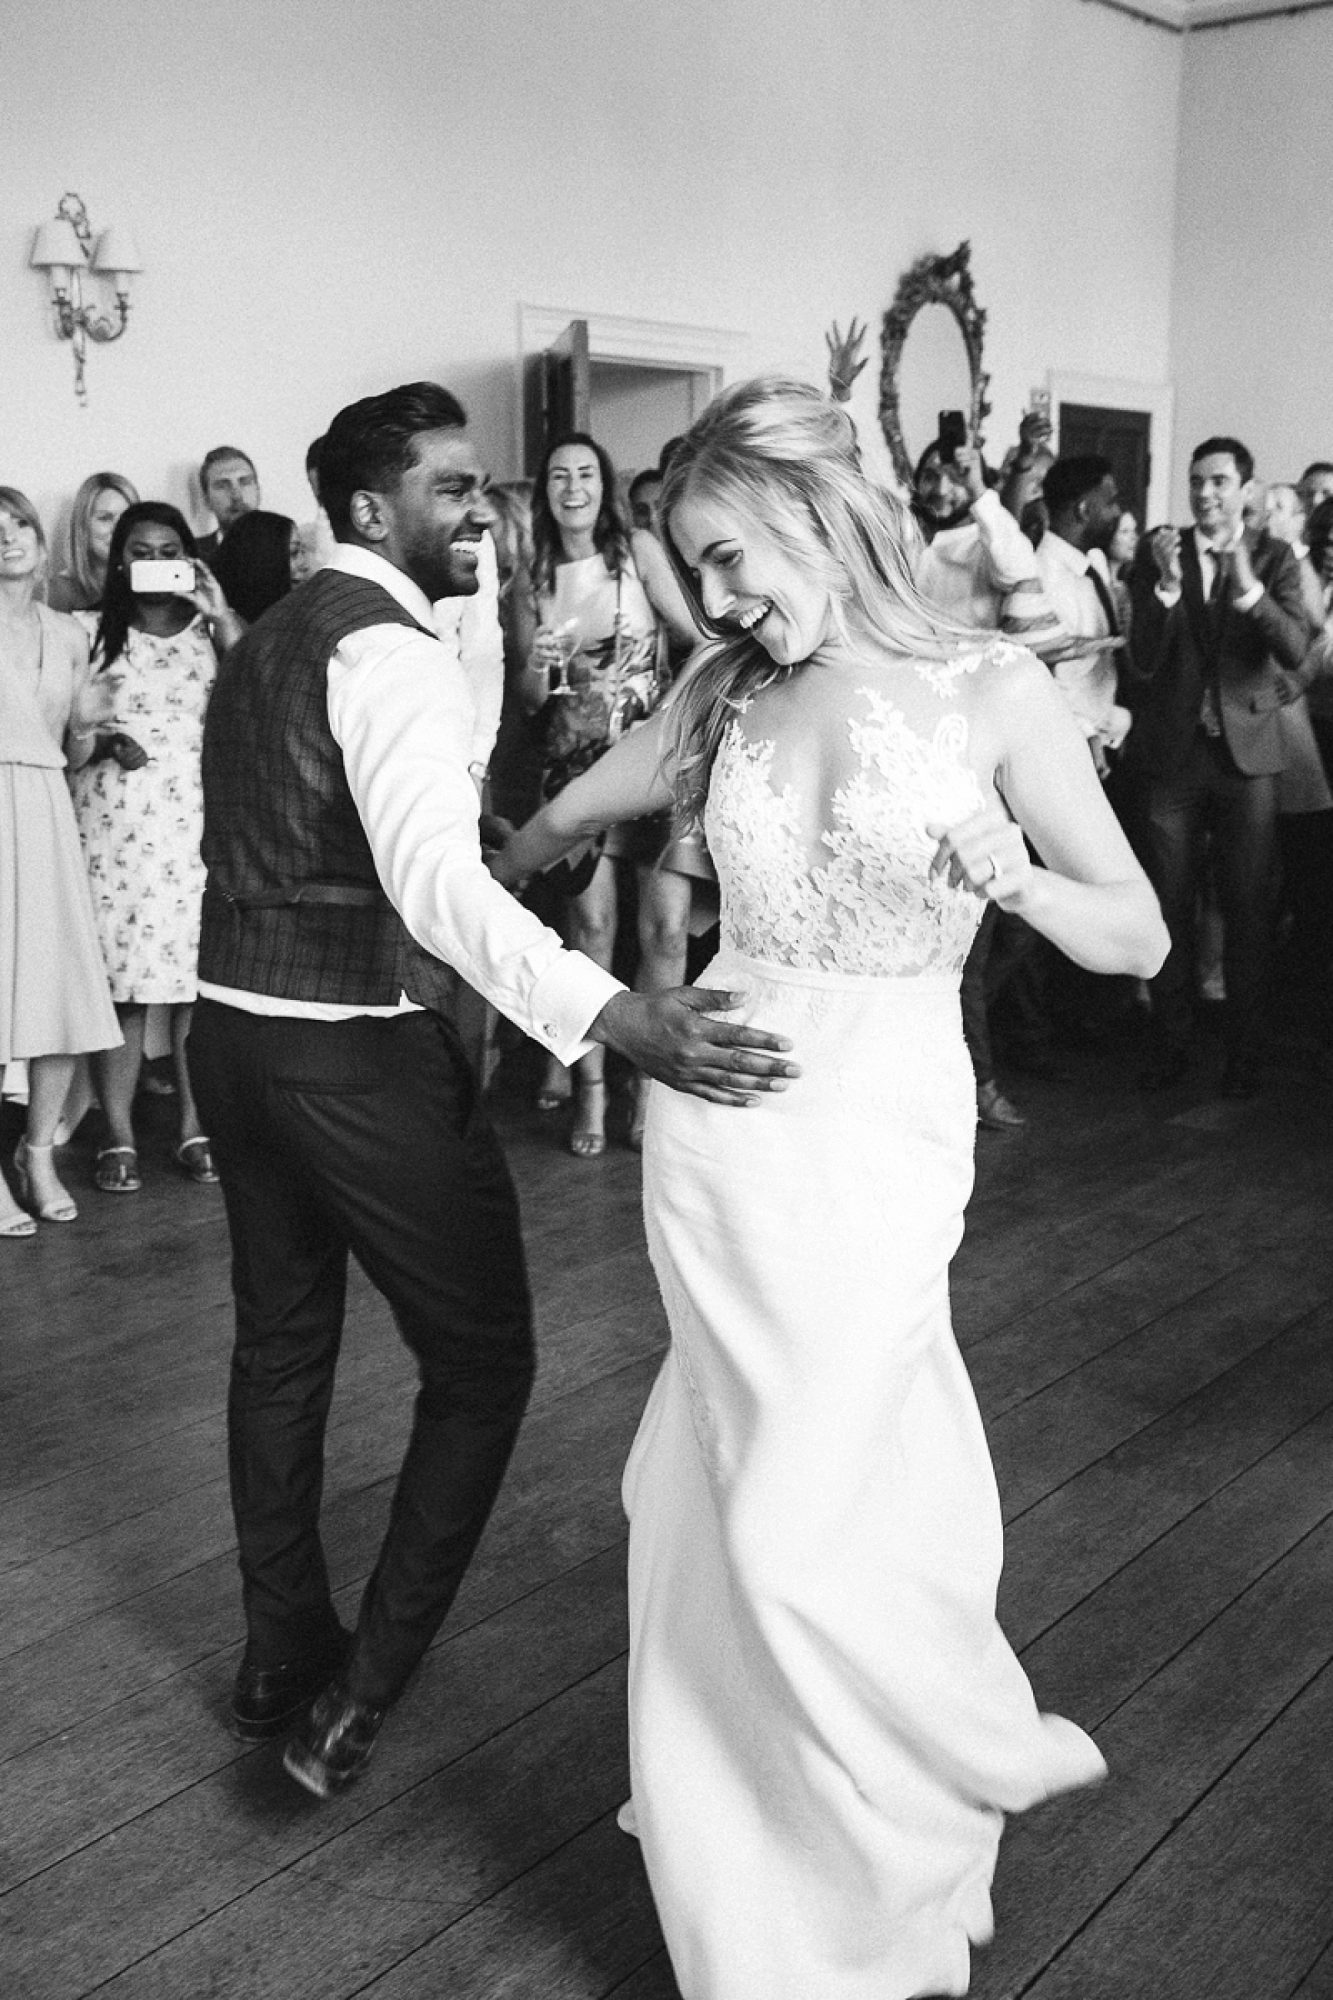 bride and groom dancing and laughing as they spin at Pynes house wedding in black and white